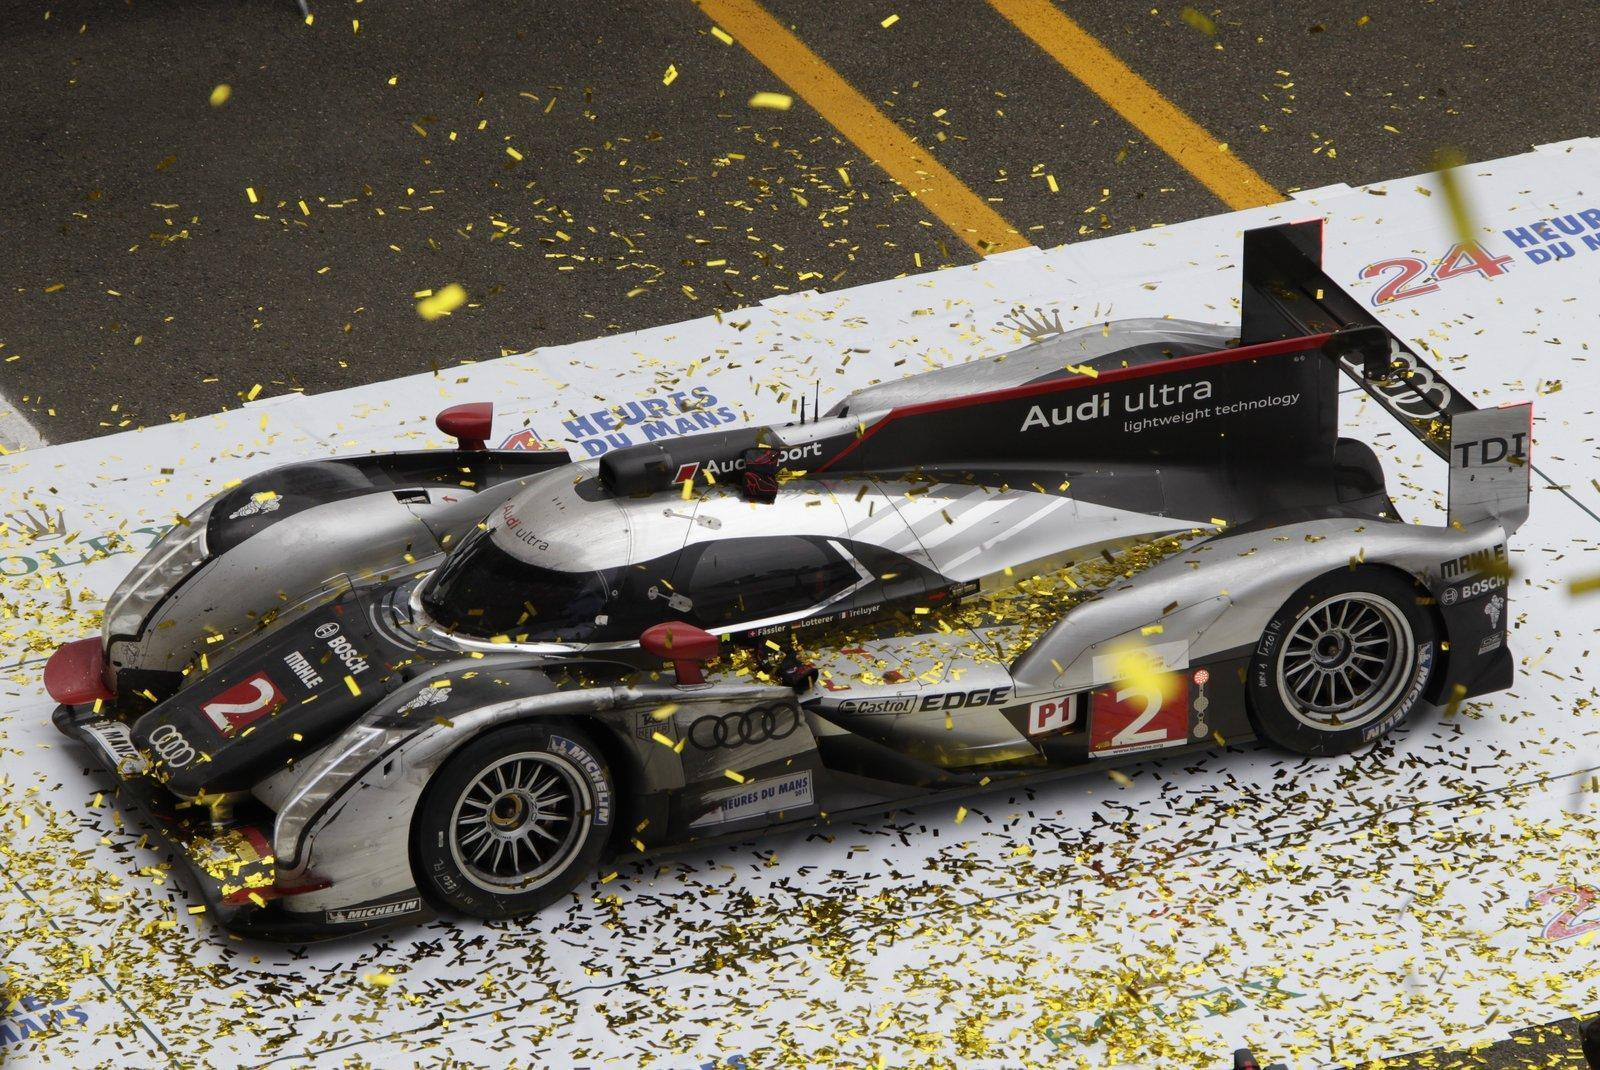 Le Mans 24hours Audi R18 TDI Hybrid wallpapers - Auto Power Girl